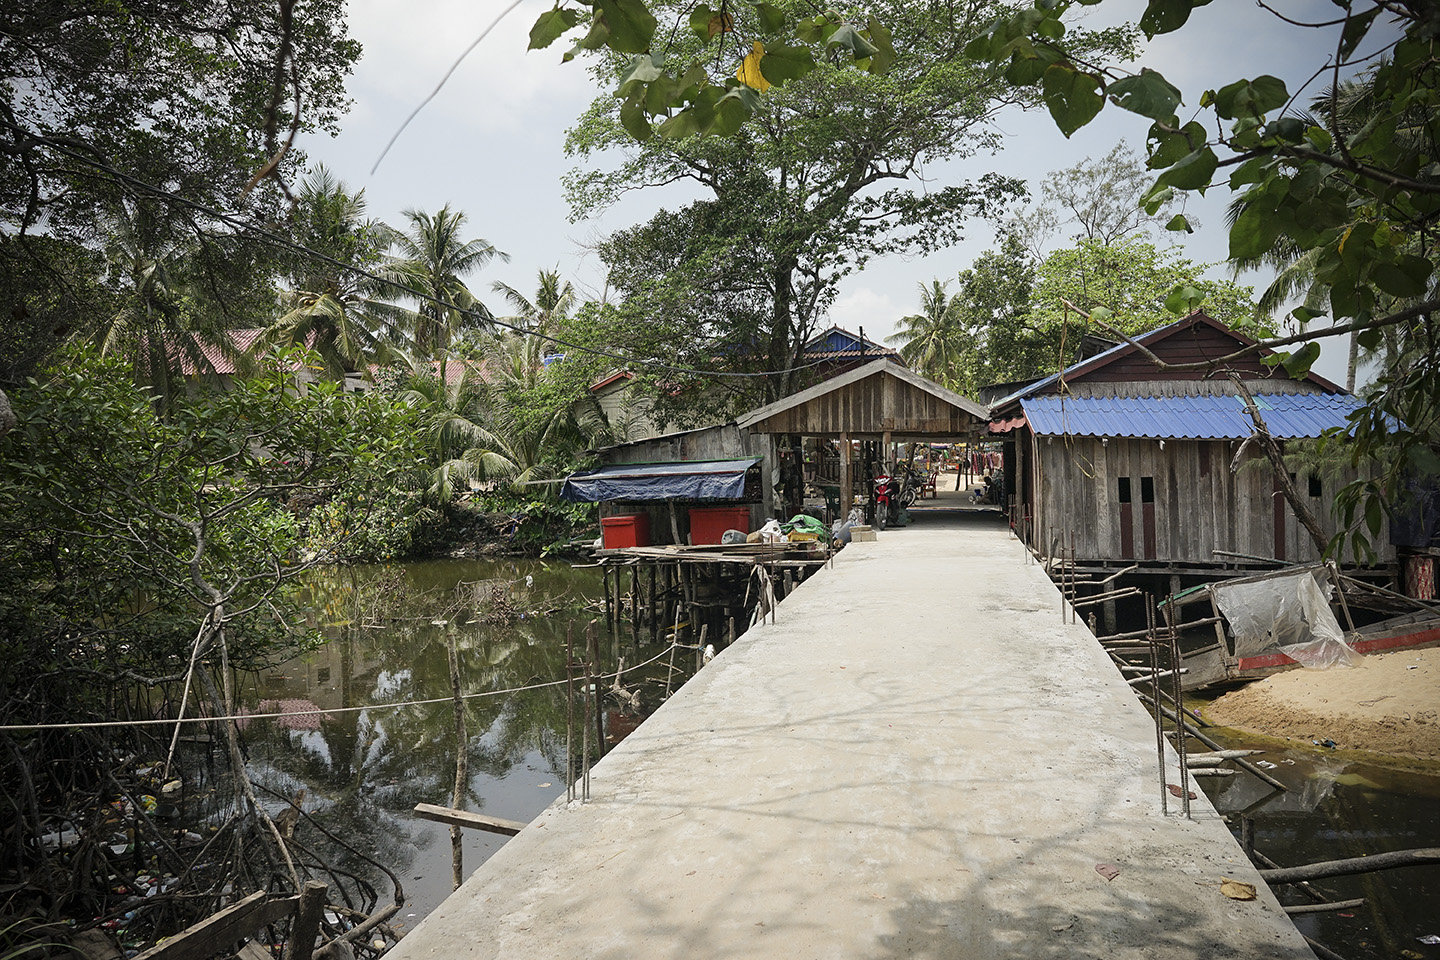 Entrance to the fishing village